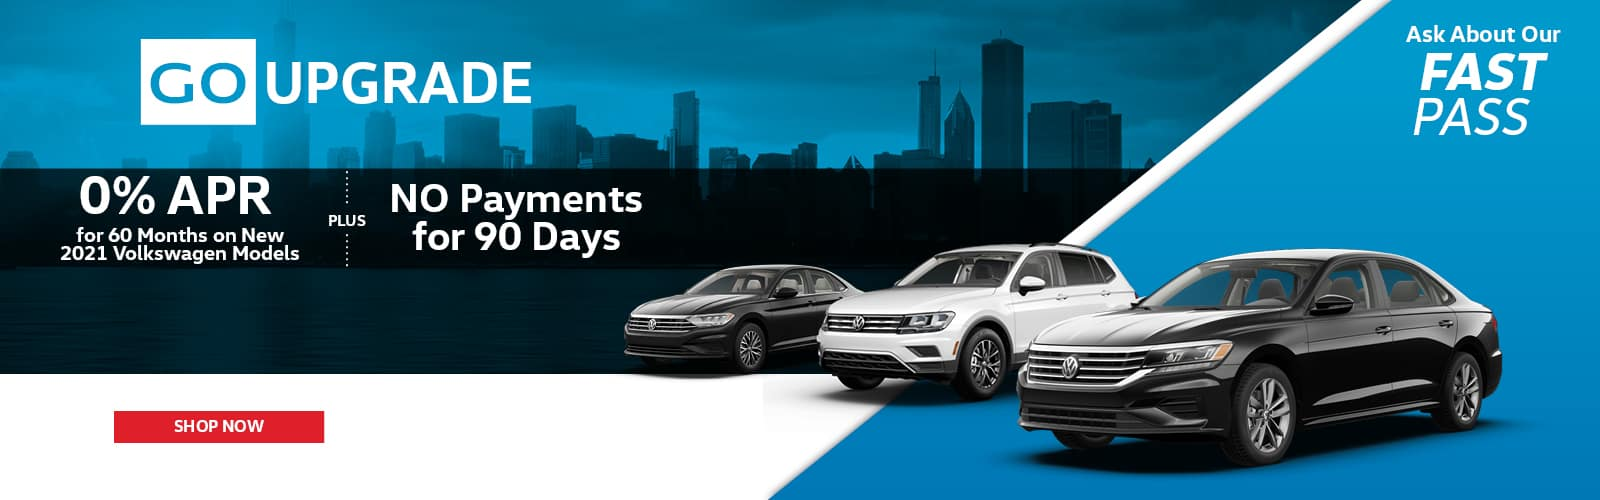 No Payments 90 Days white and black 2021 new VW models